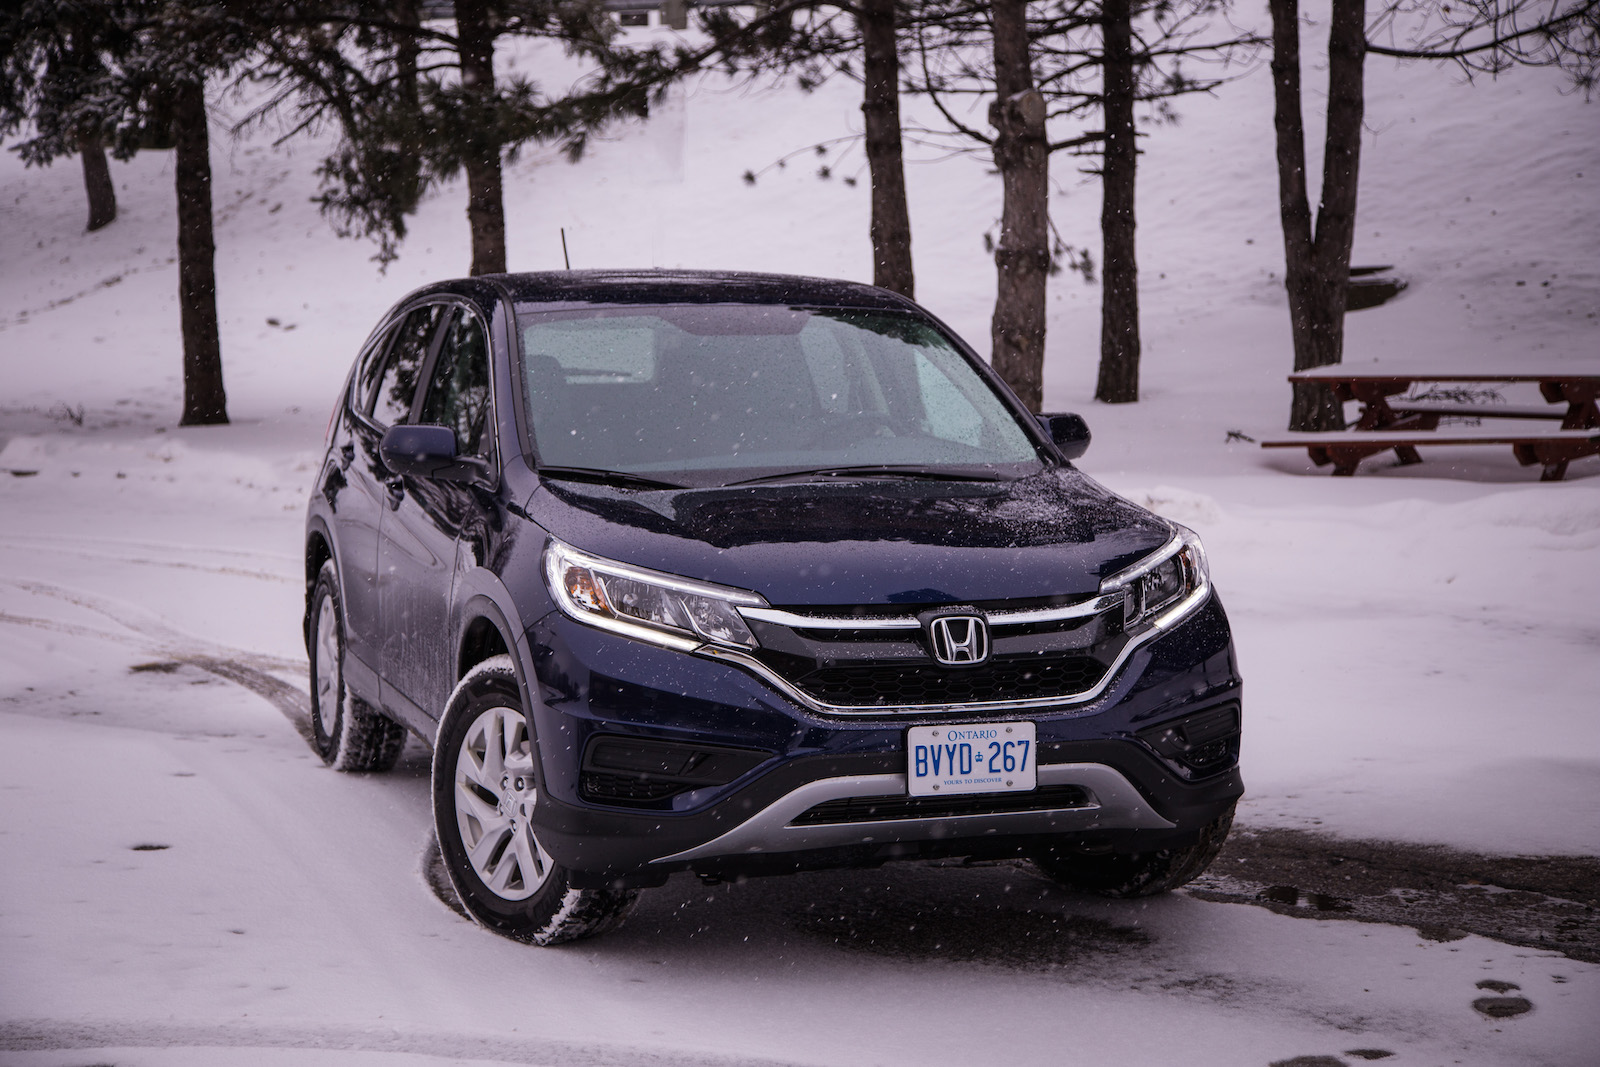 se class of when in v a carpages its cr ago is crv why came best away test vehicle we model reviews selling garage better the s about review year and with honda road understanding tested